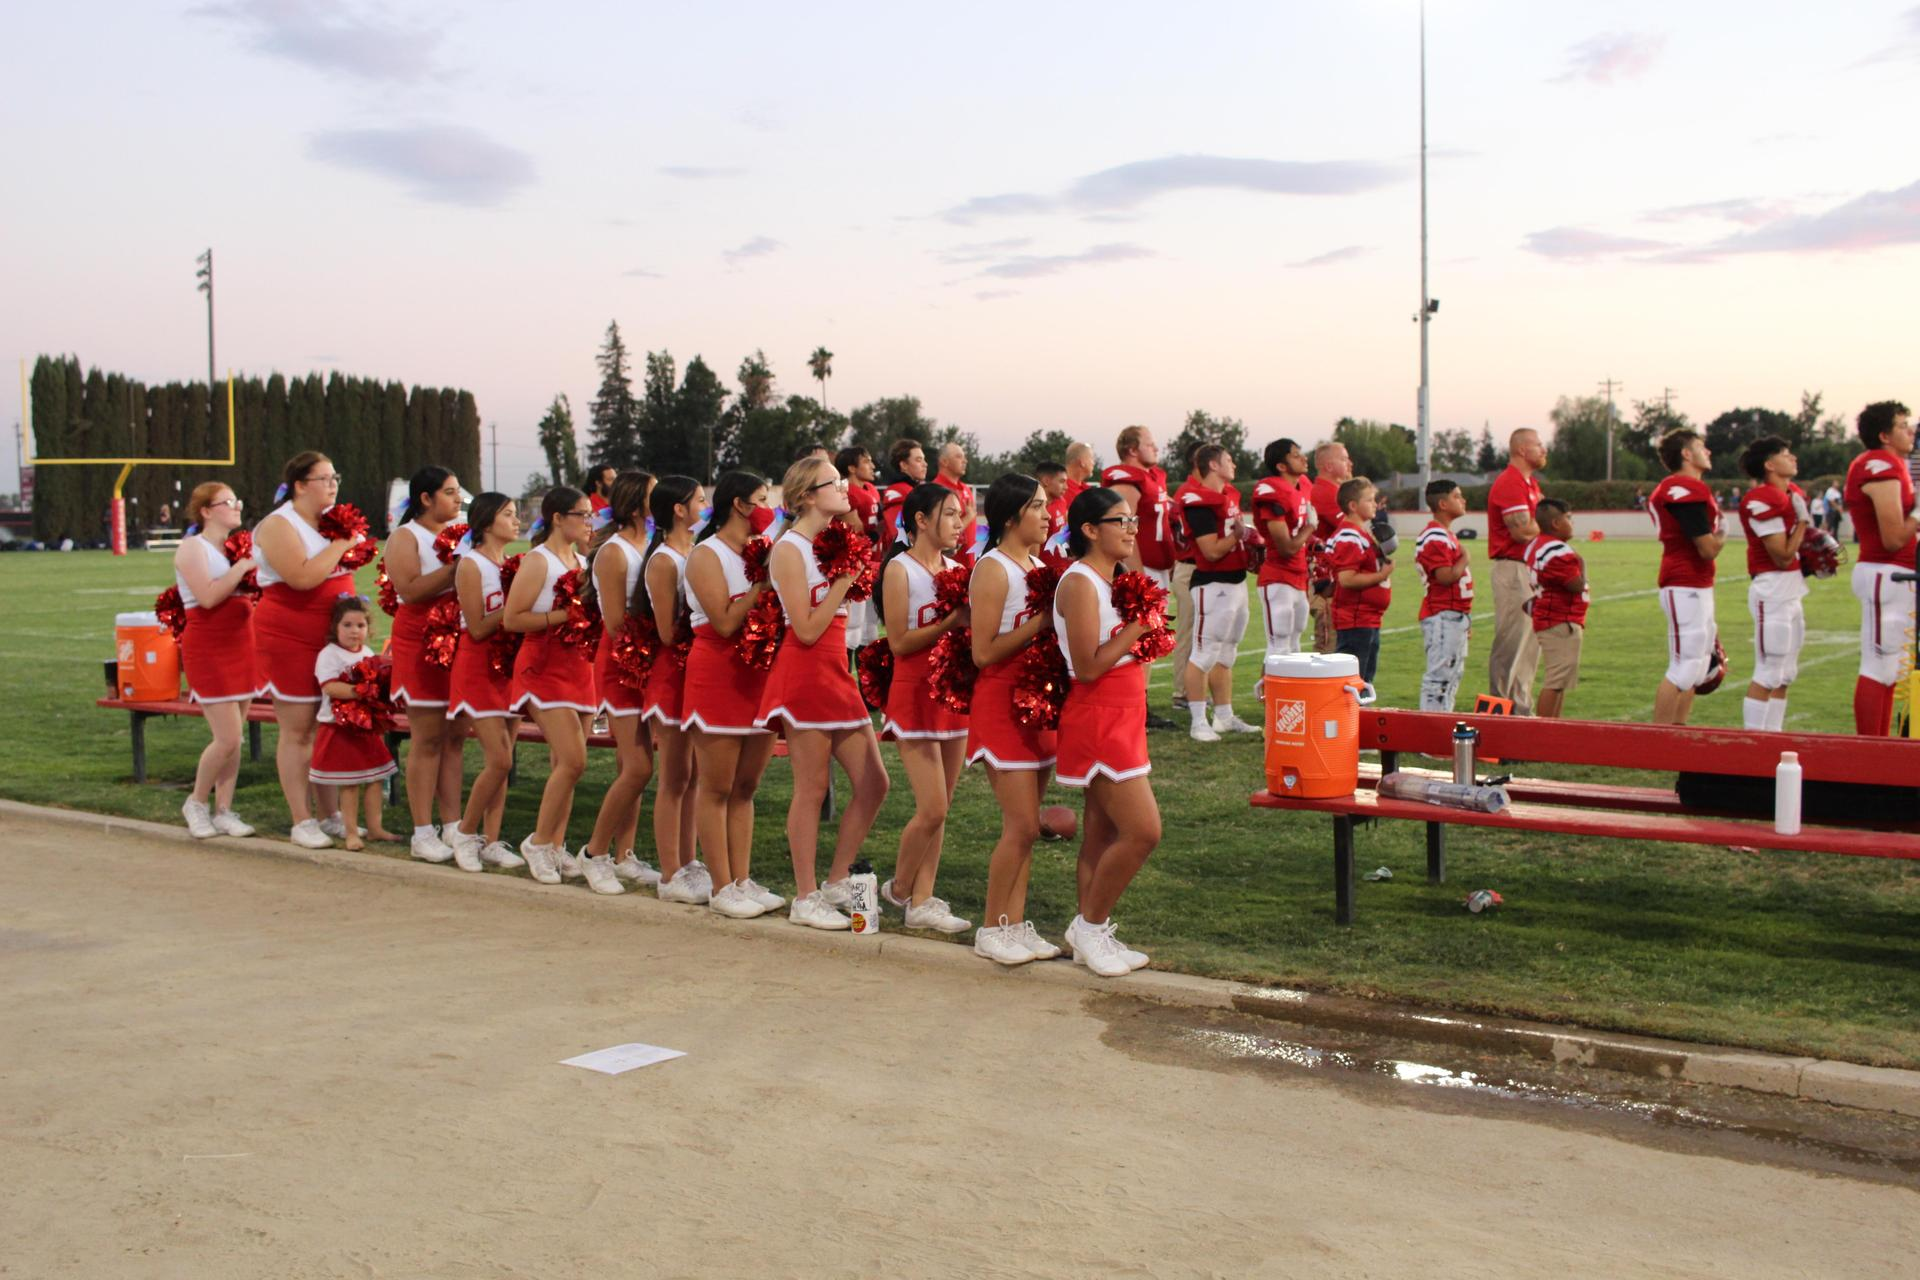 Students enjoying the football game against hoover